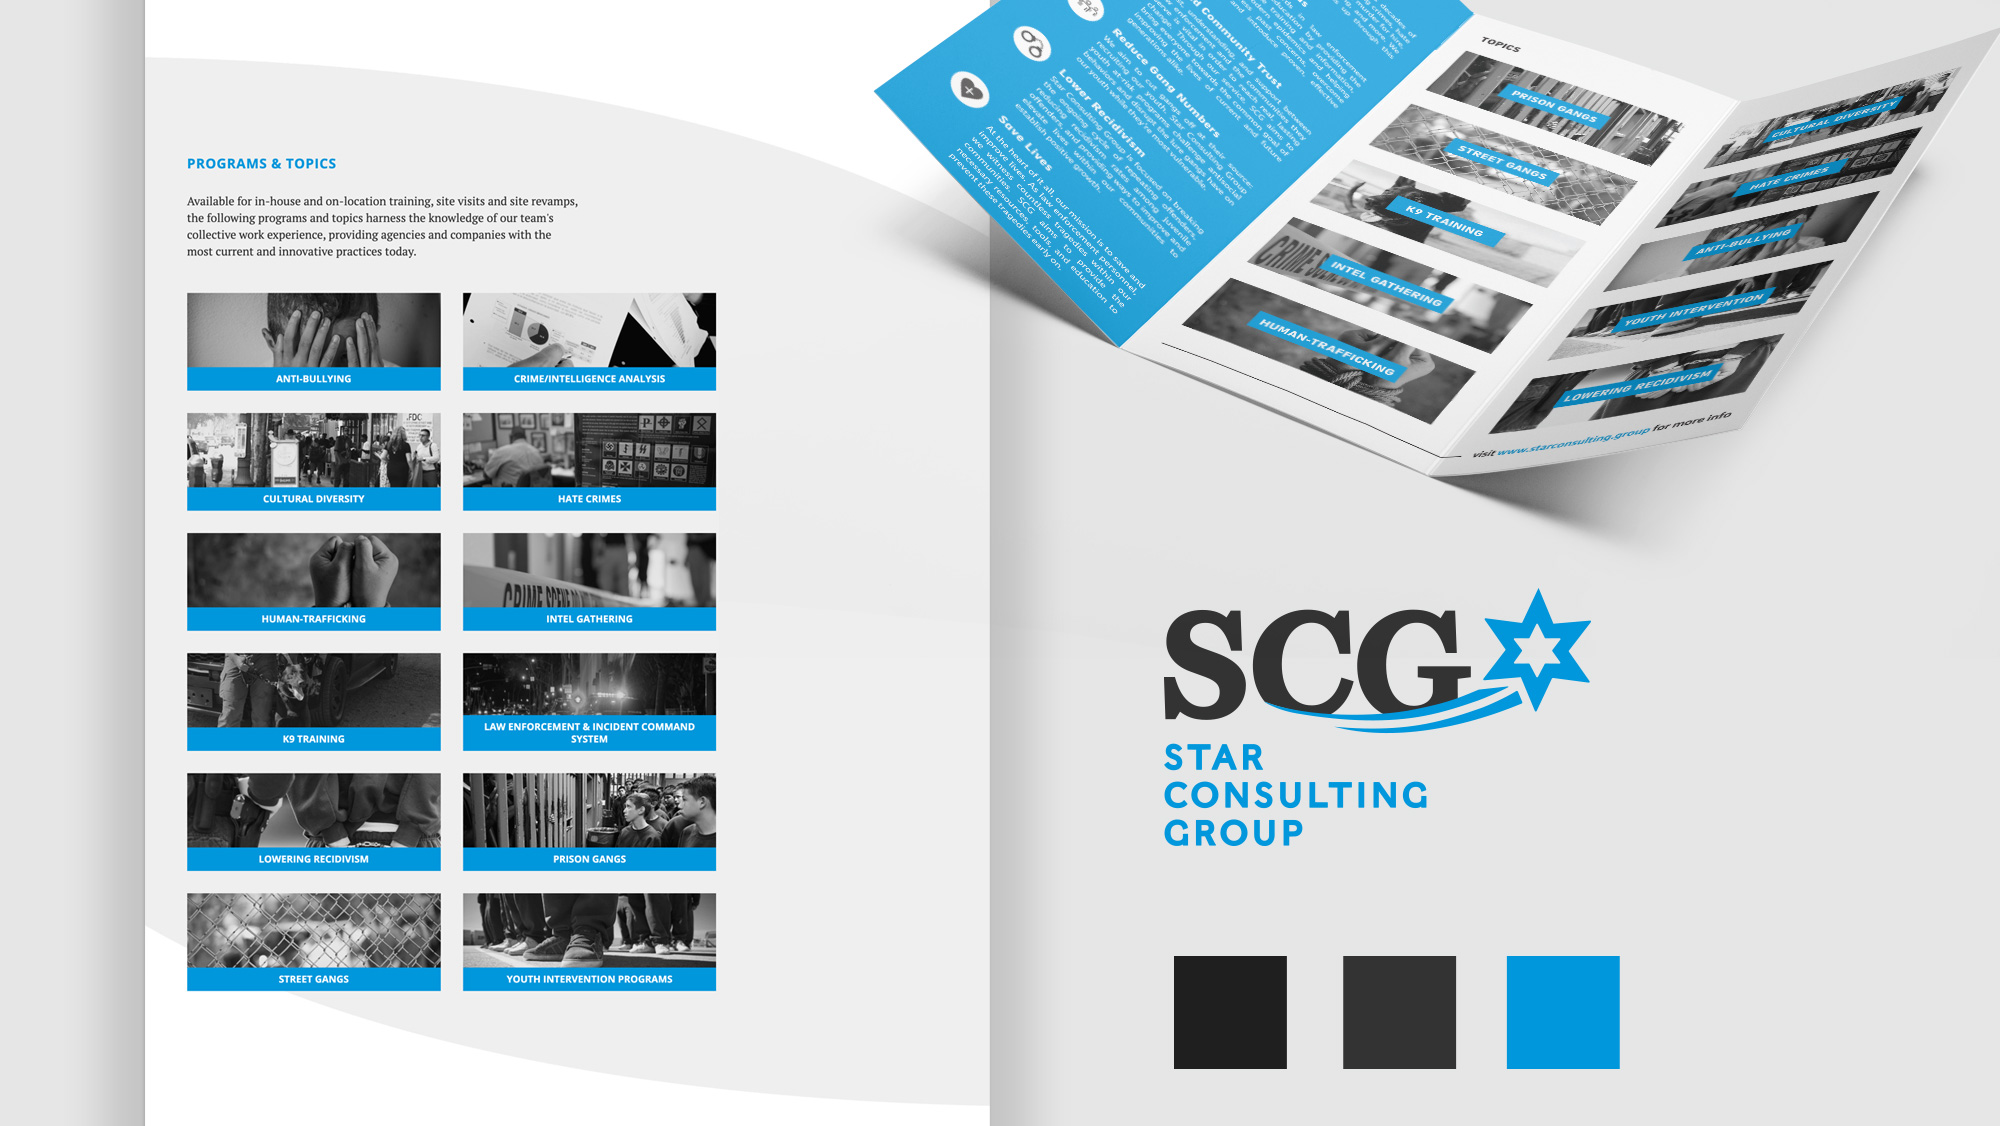 Star Consulting Group